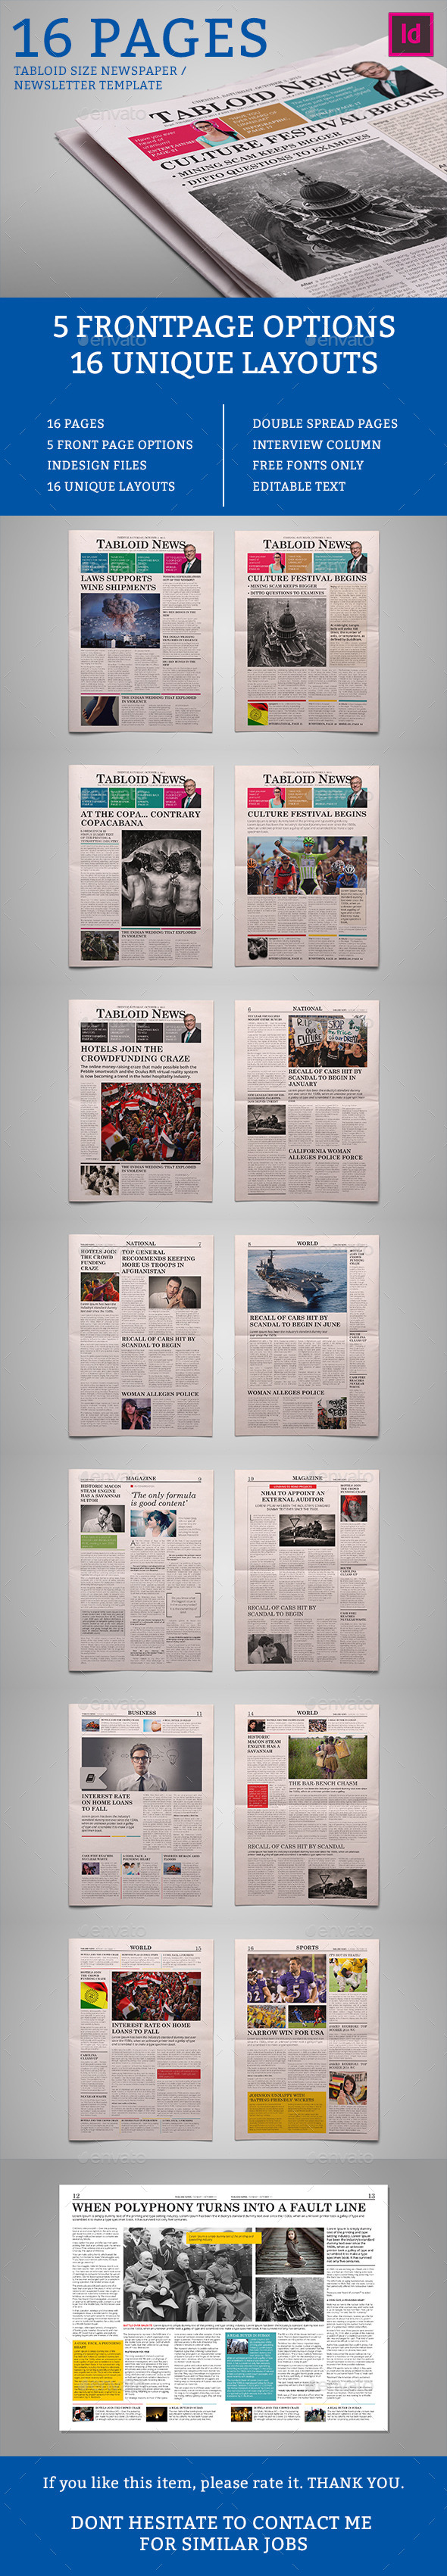 Tabloid News 16 Pages - Newsletters Print Templates